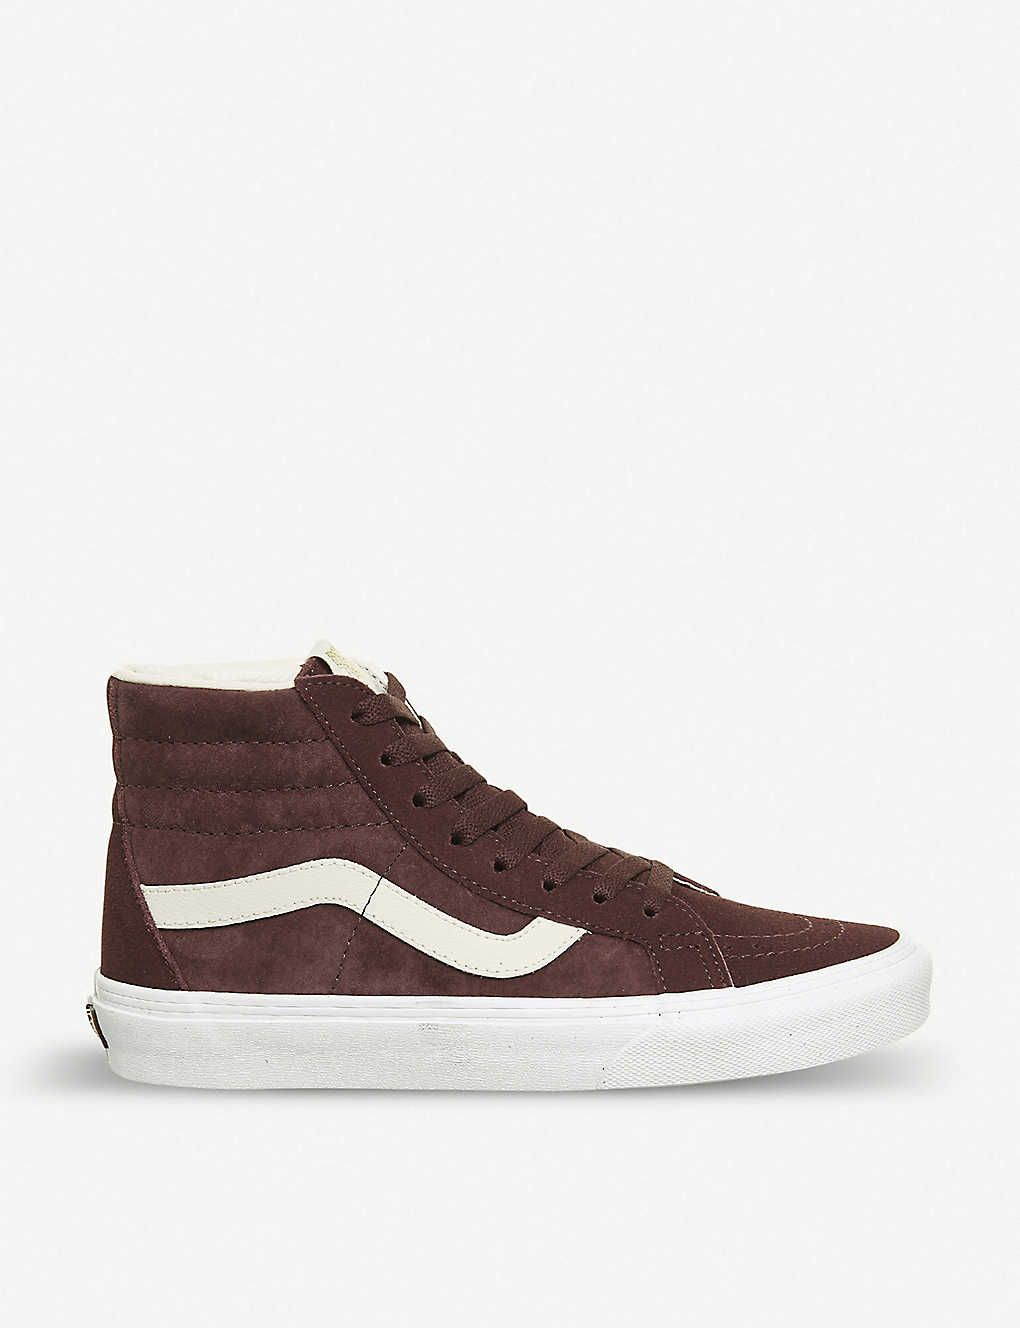 7c9f6686a9 ... Sk8 Hi suede trainers zoom ...